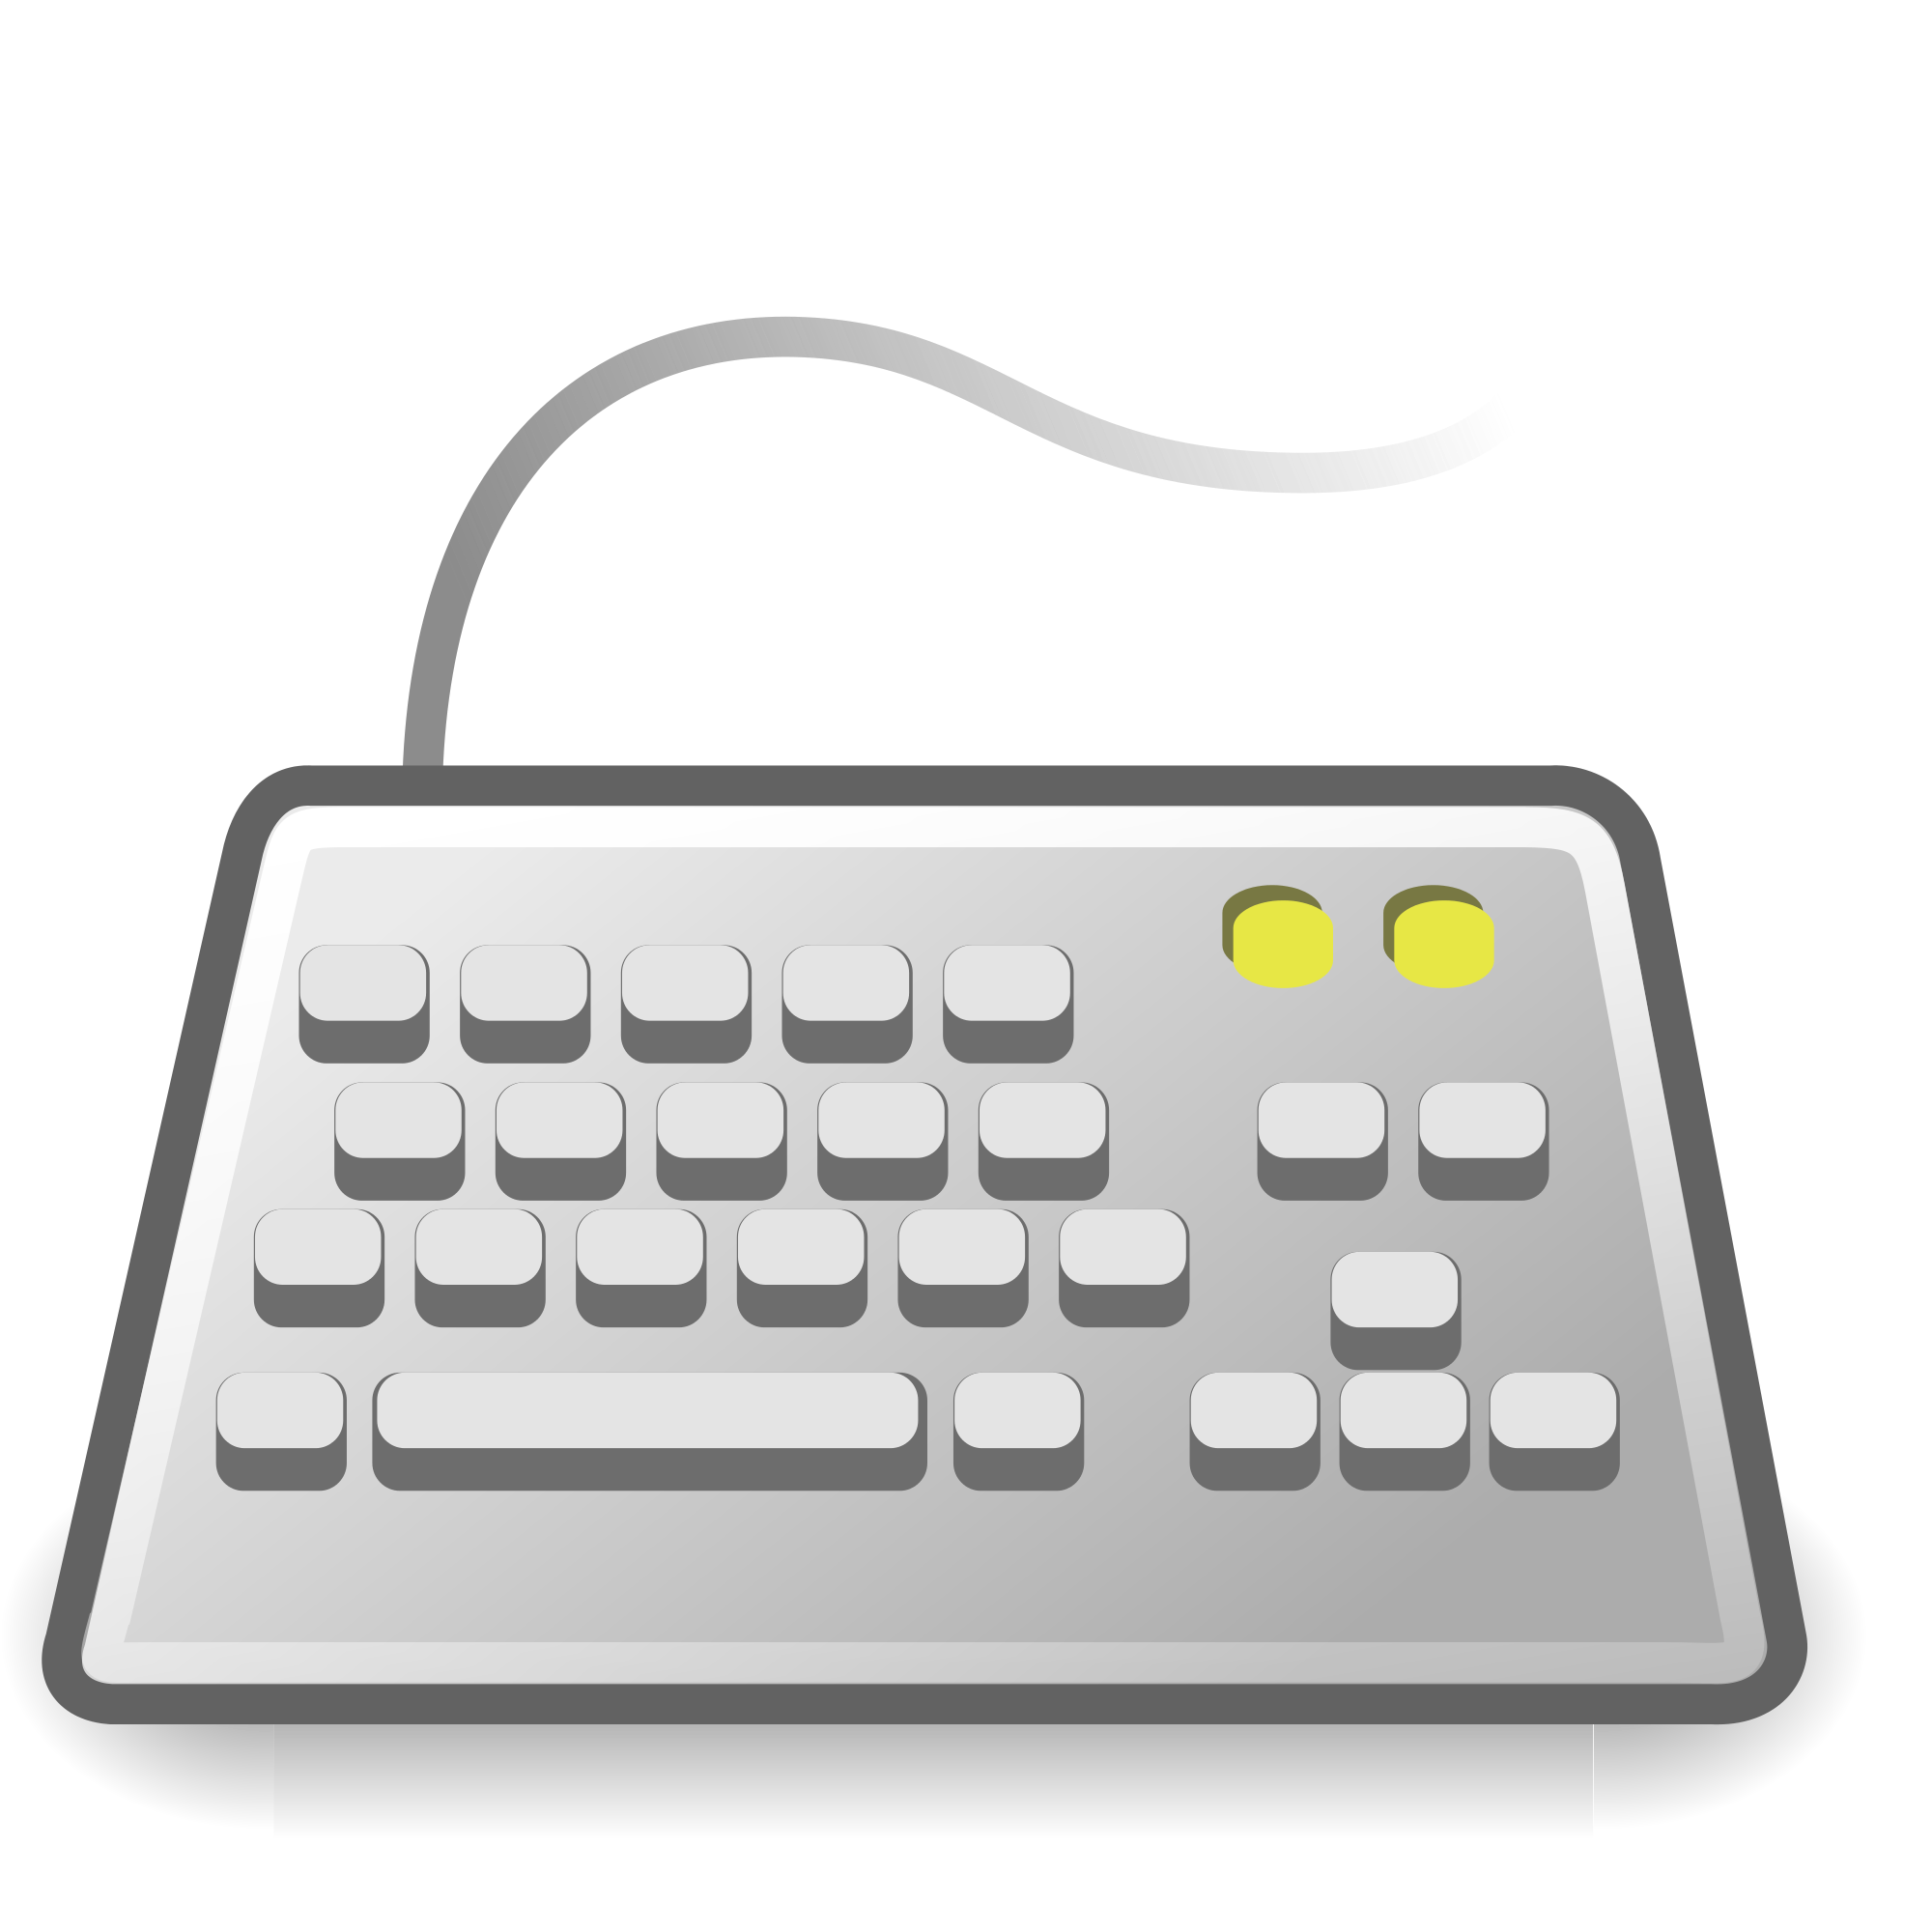 Computer keyboard clipart svg freeuse File:Input-keyboard.svg - Wikimedia Commons svg freeuse